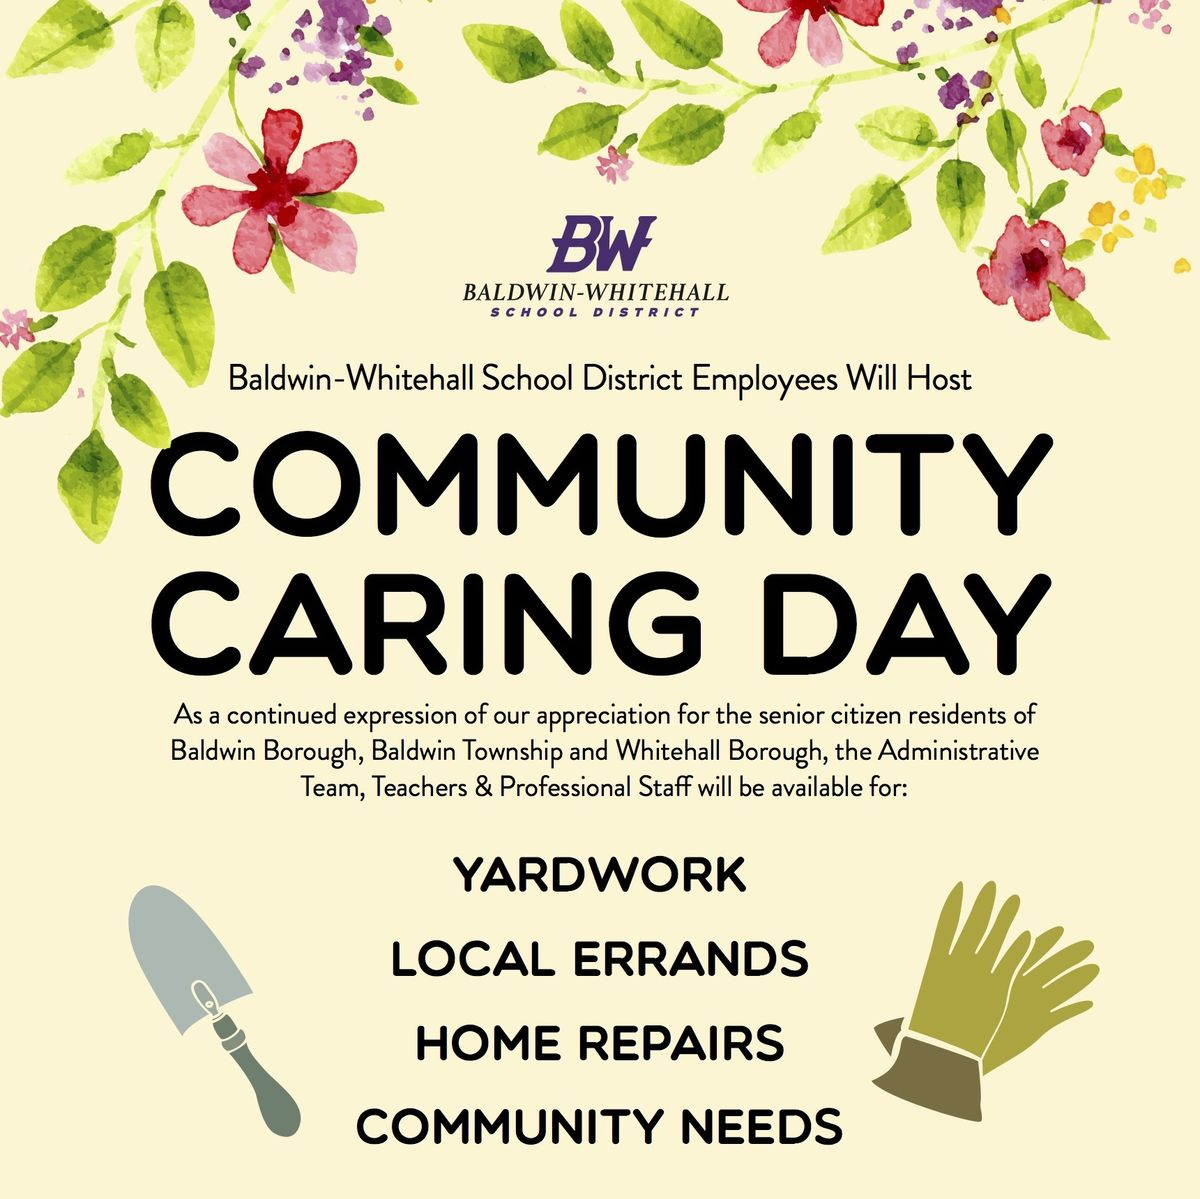 Baldwin-Whitehall School District Employees Host Community Caring Day